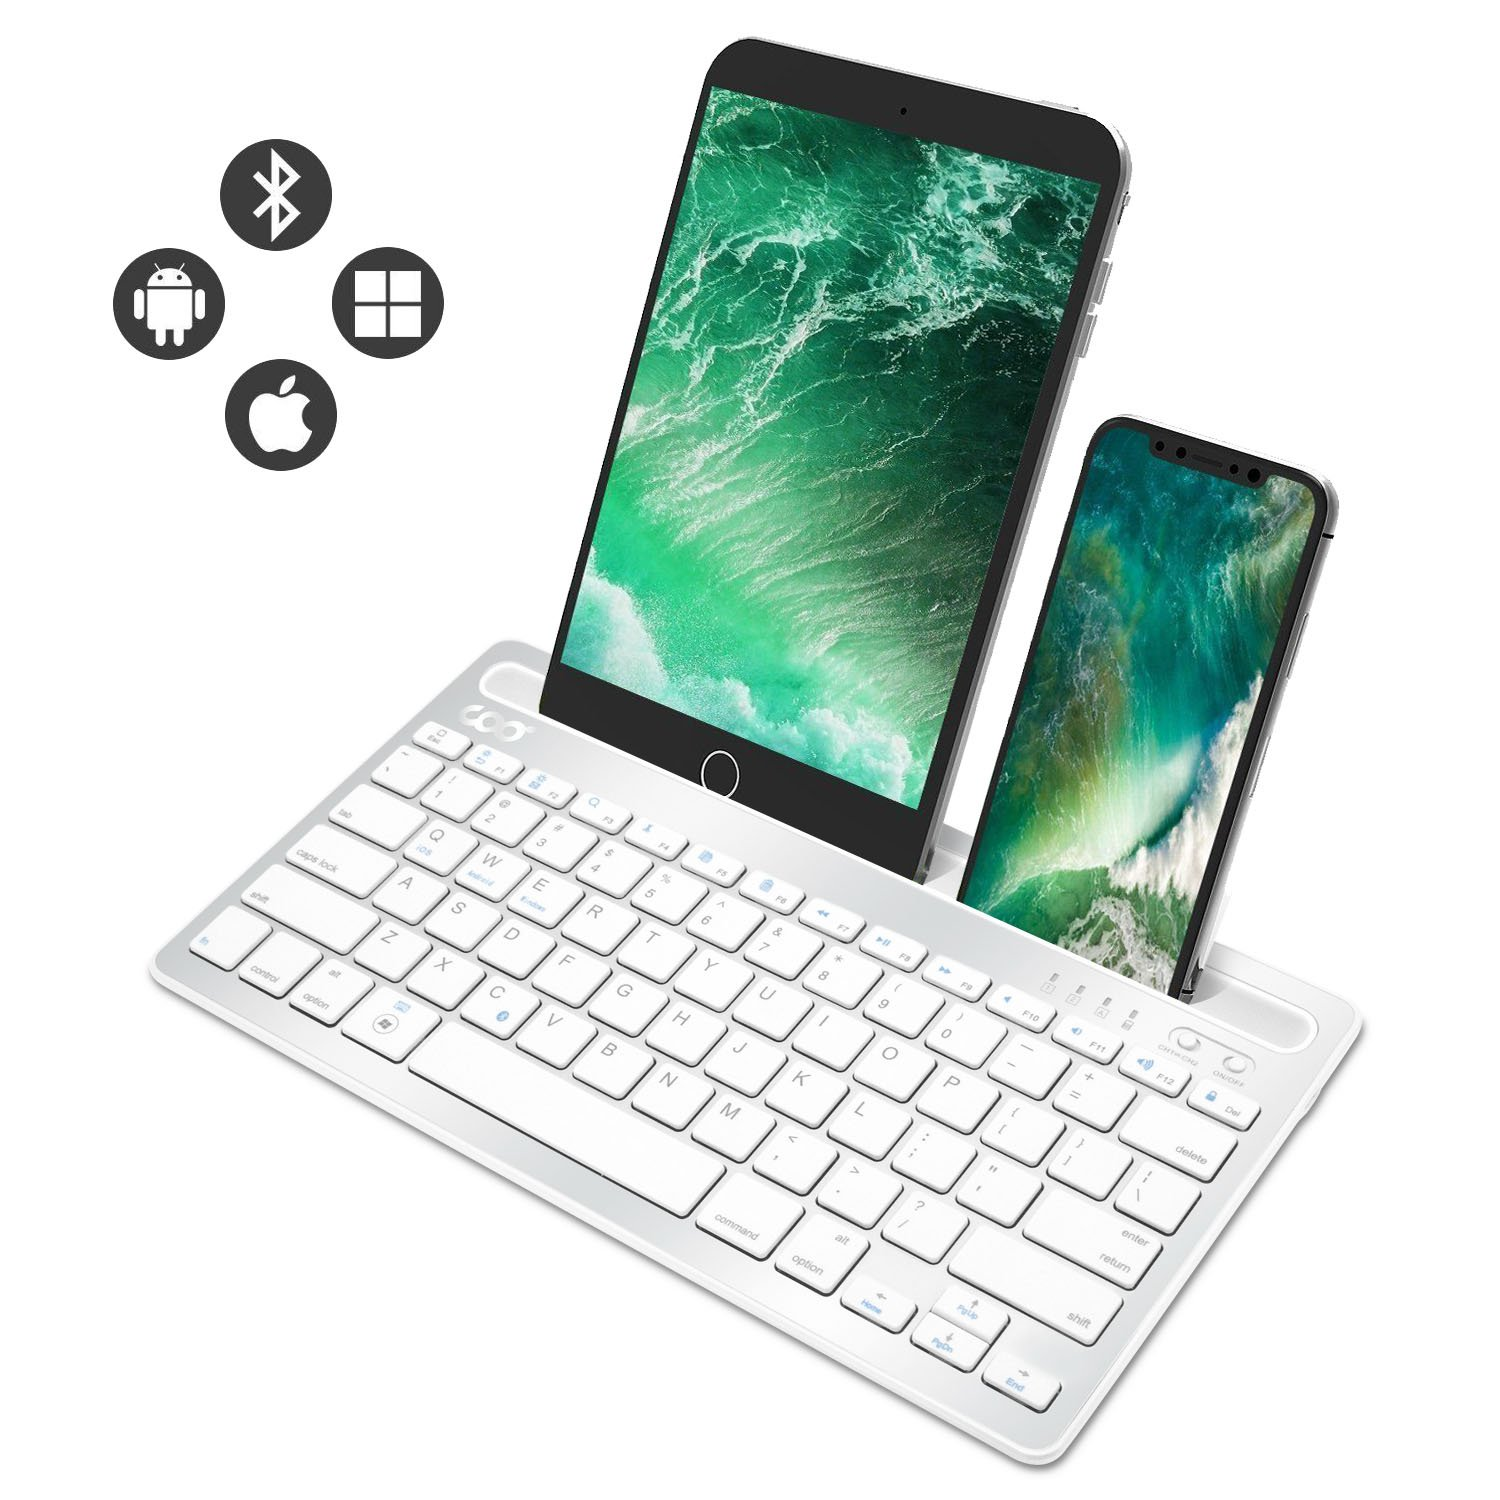 Bluetooth keyboard, Dual Channel Multi-device Universal Wireless Bluetooth Rechargeable Keyboard with Sturdy Stand for Tablet Smartphone PC Windows Android iOS Mac(Silver)